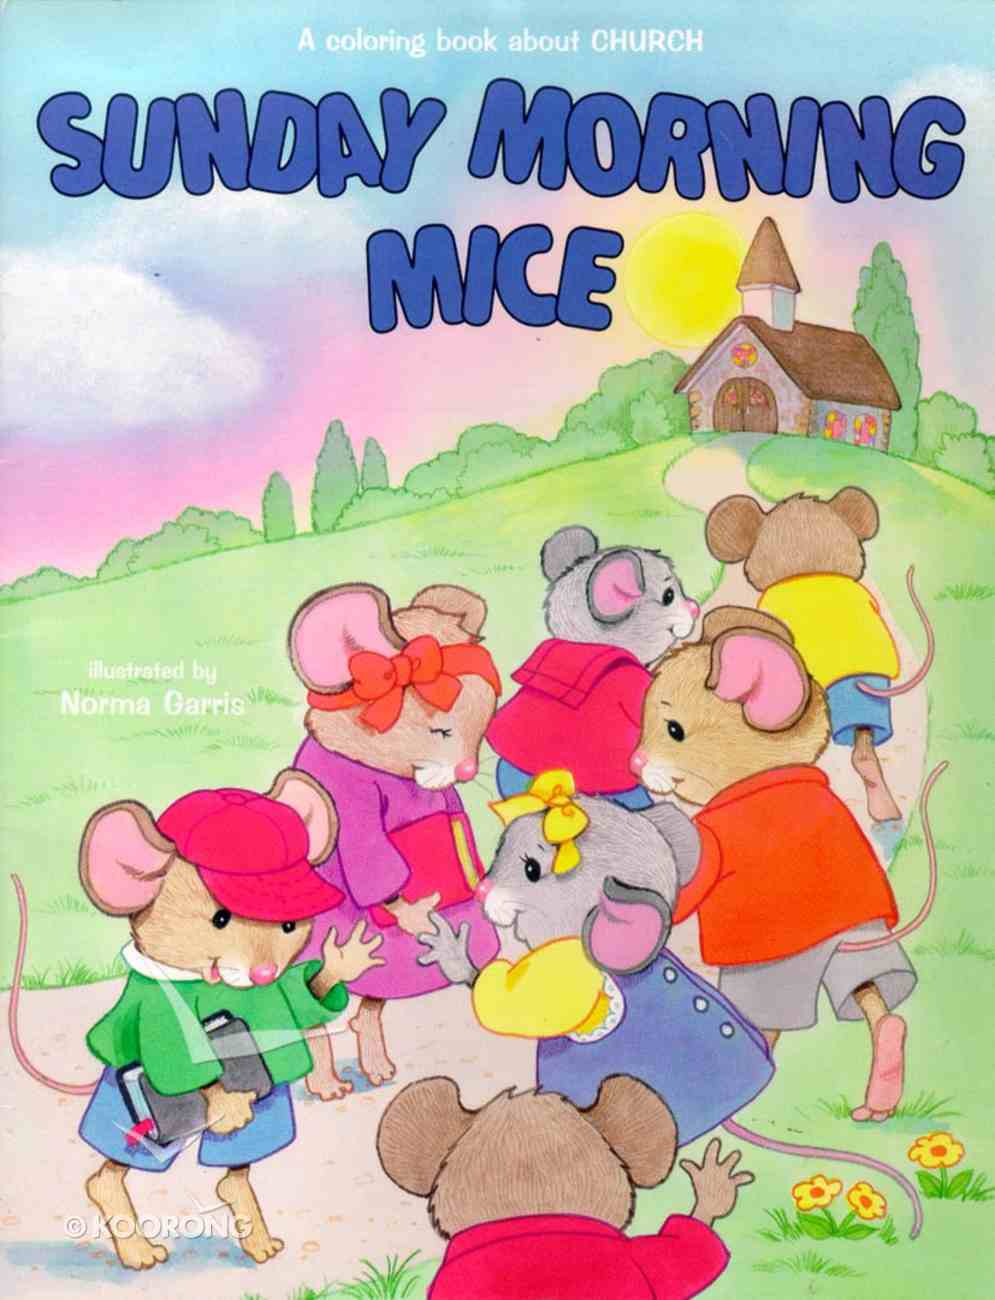 Sunday Morning Mice (Colouring Book) Paperback